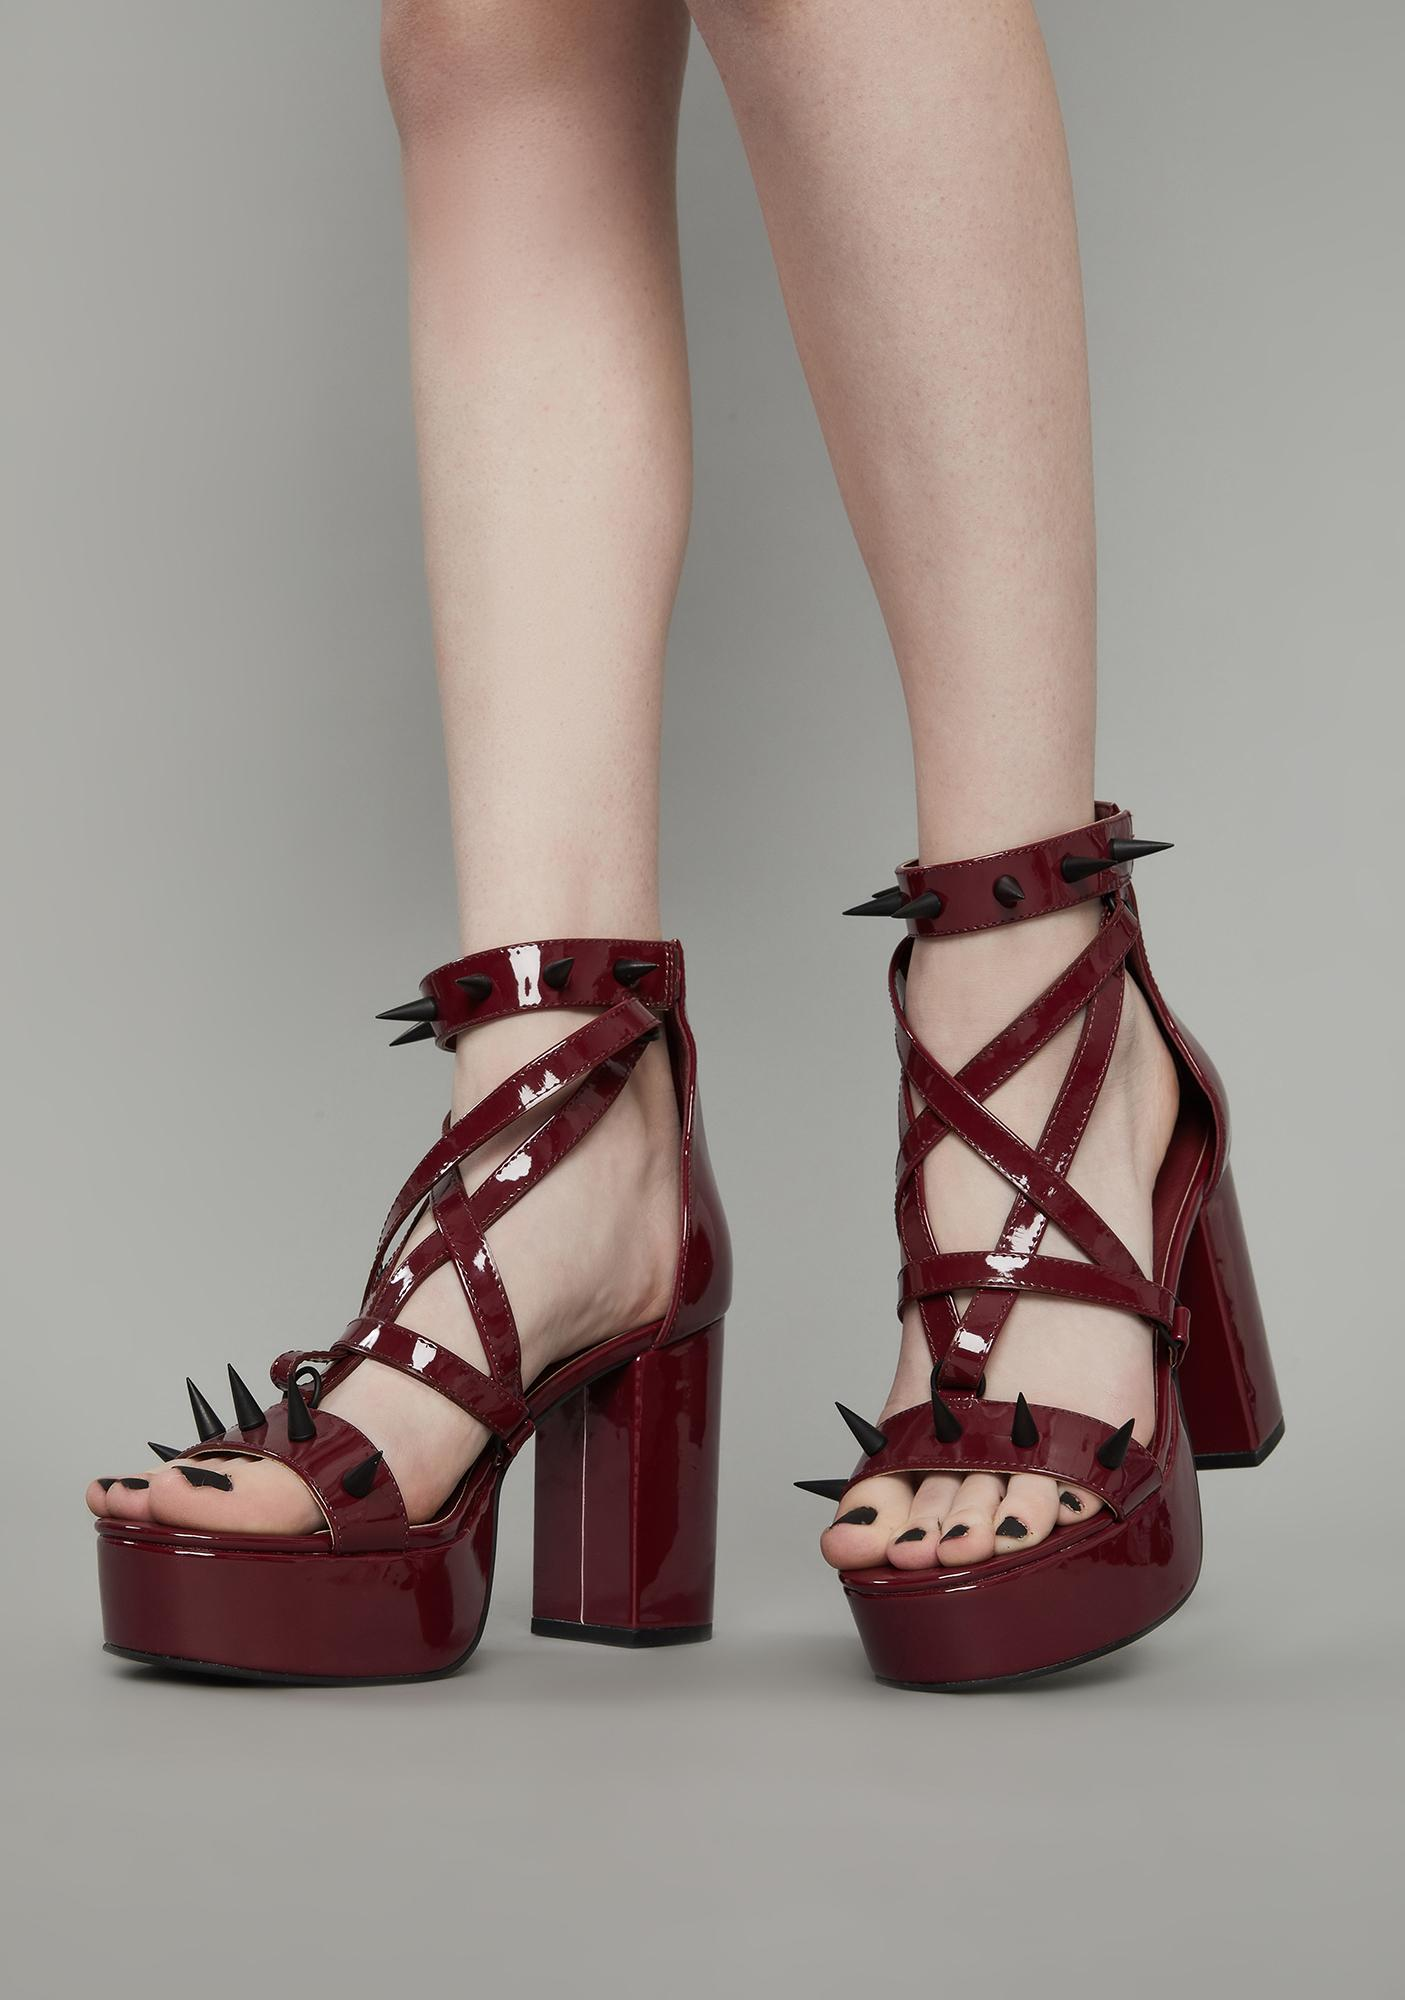 Widow Wine Killing Me Softly Spiked Heels